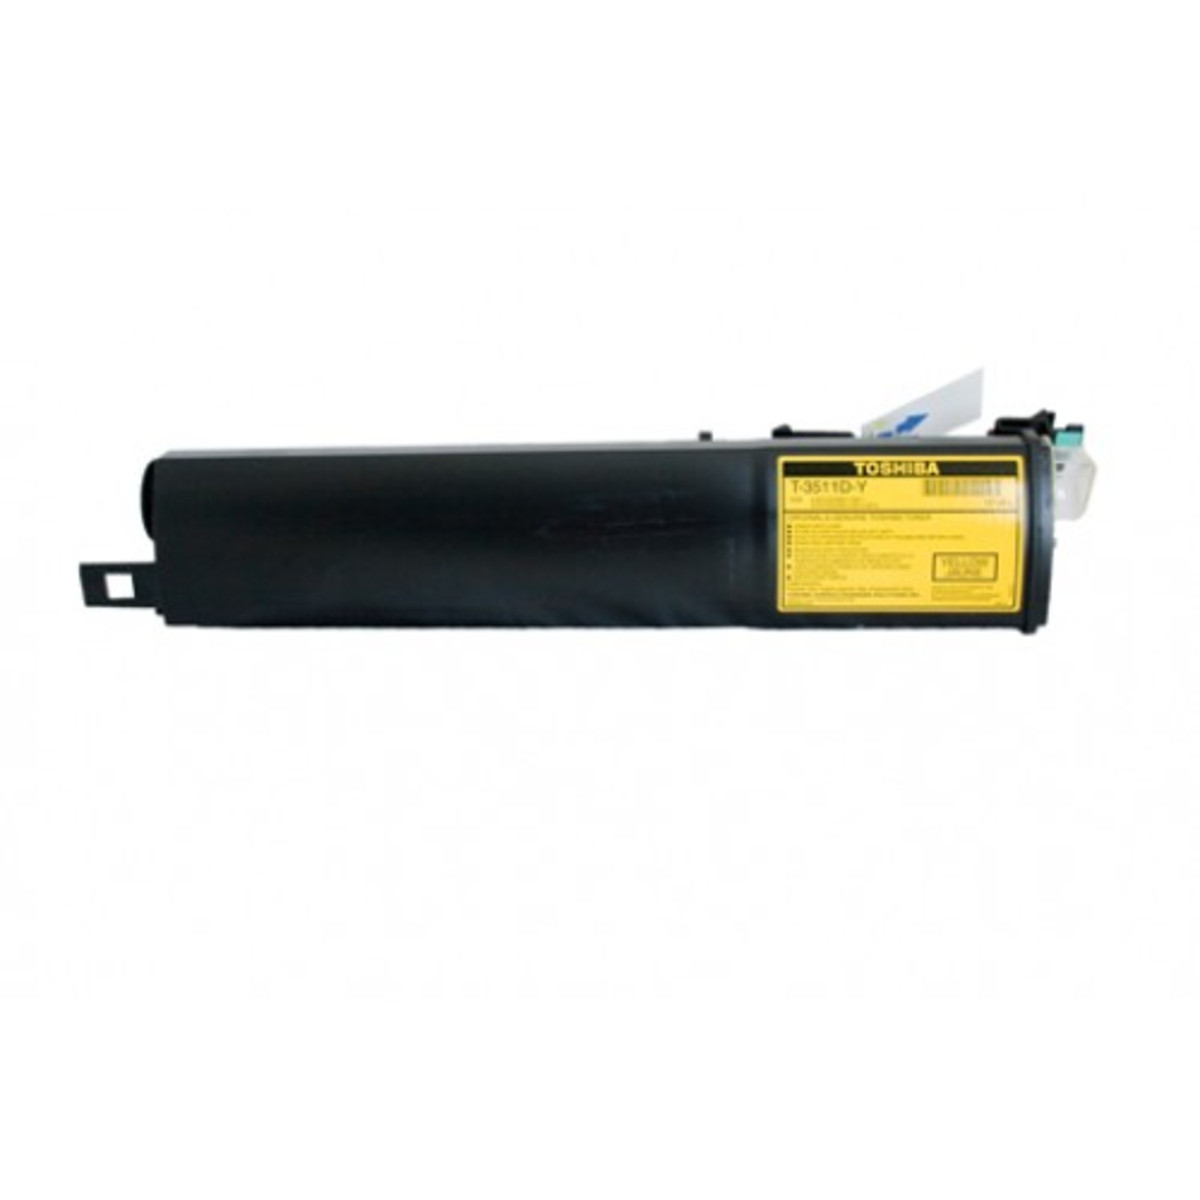 Toshiba T3511D Yellow Copier Cartridge